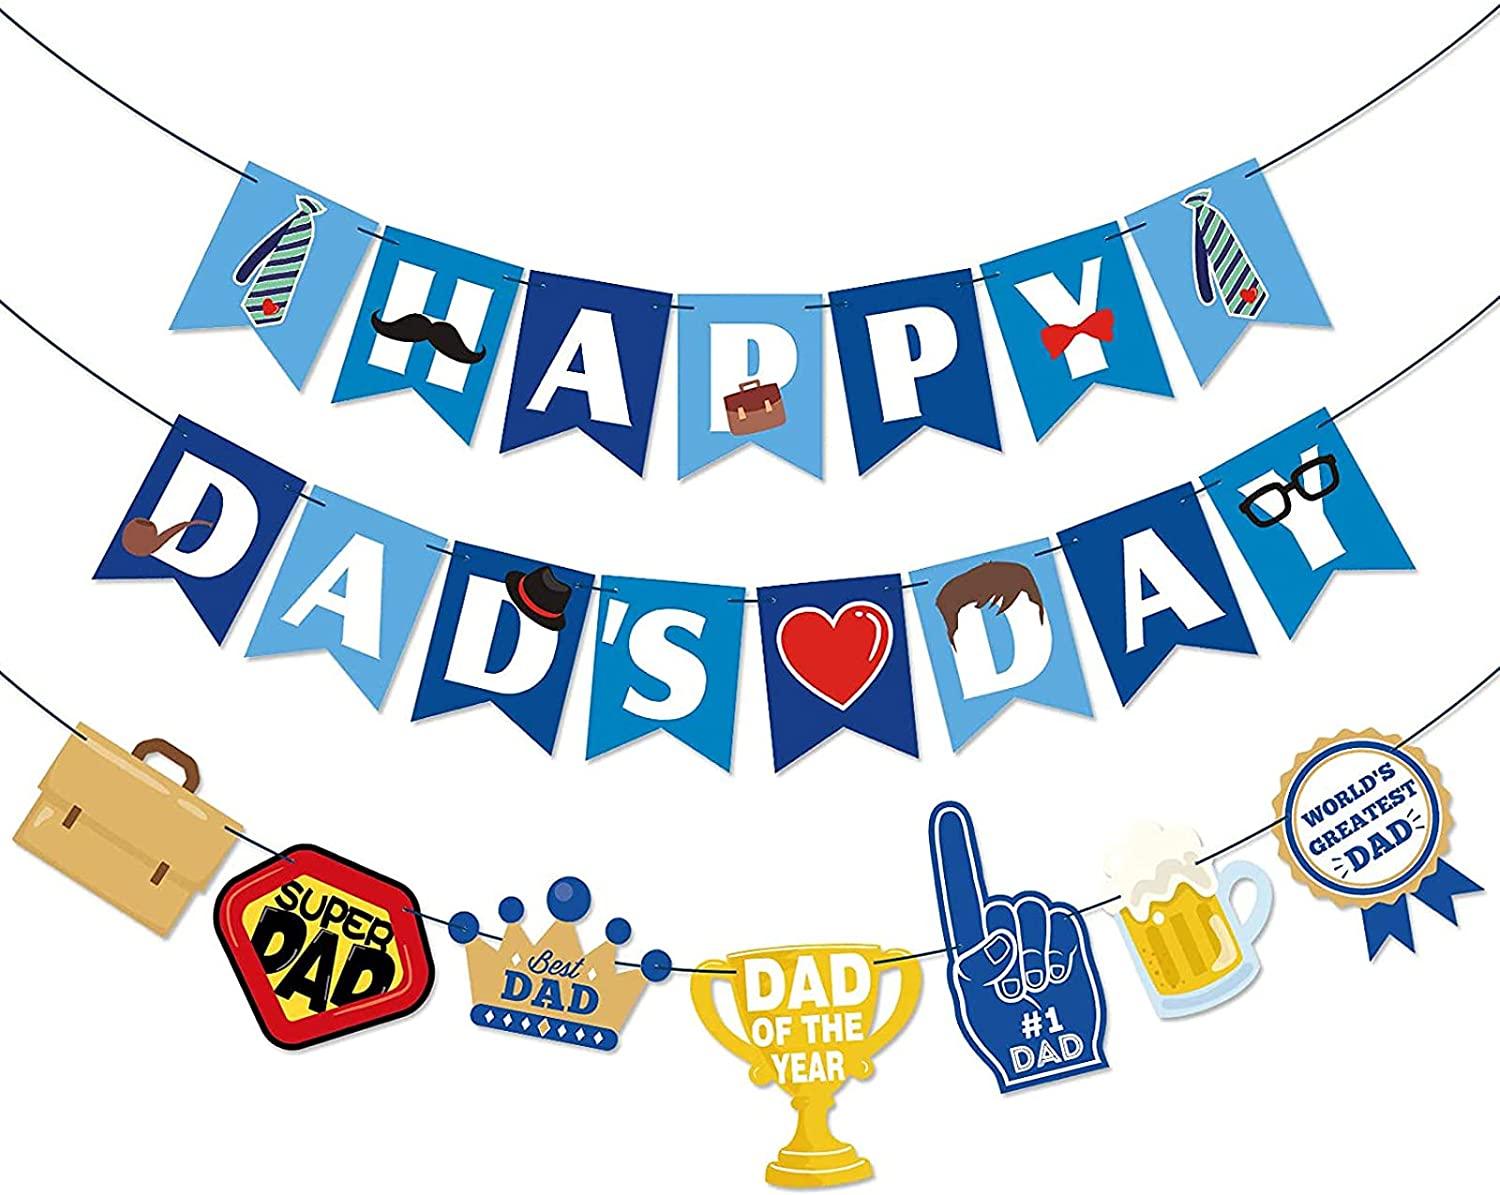 Happy Dads Day Banner | Pre-strung Fathers Day Party Decorations | Fathers Day Family Celebration Supplies Photo Prop Gift From Sons or Daughters